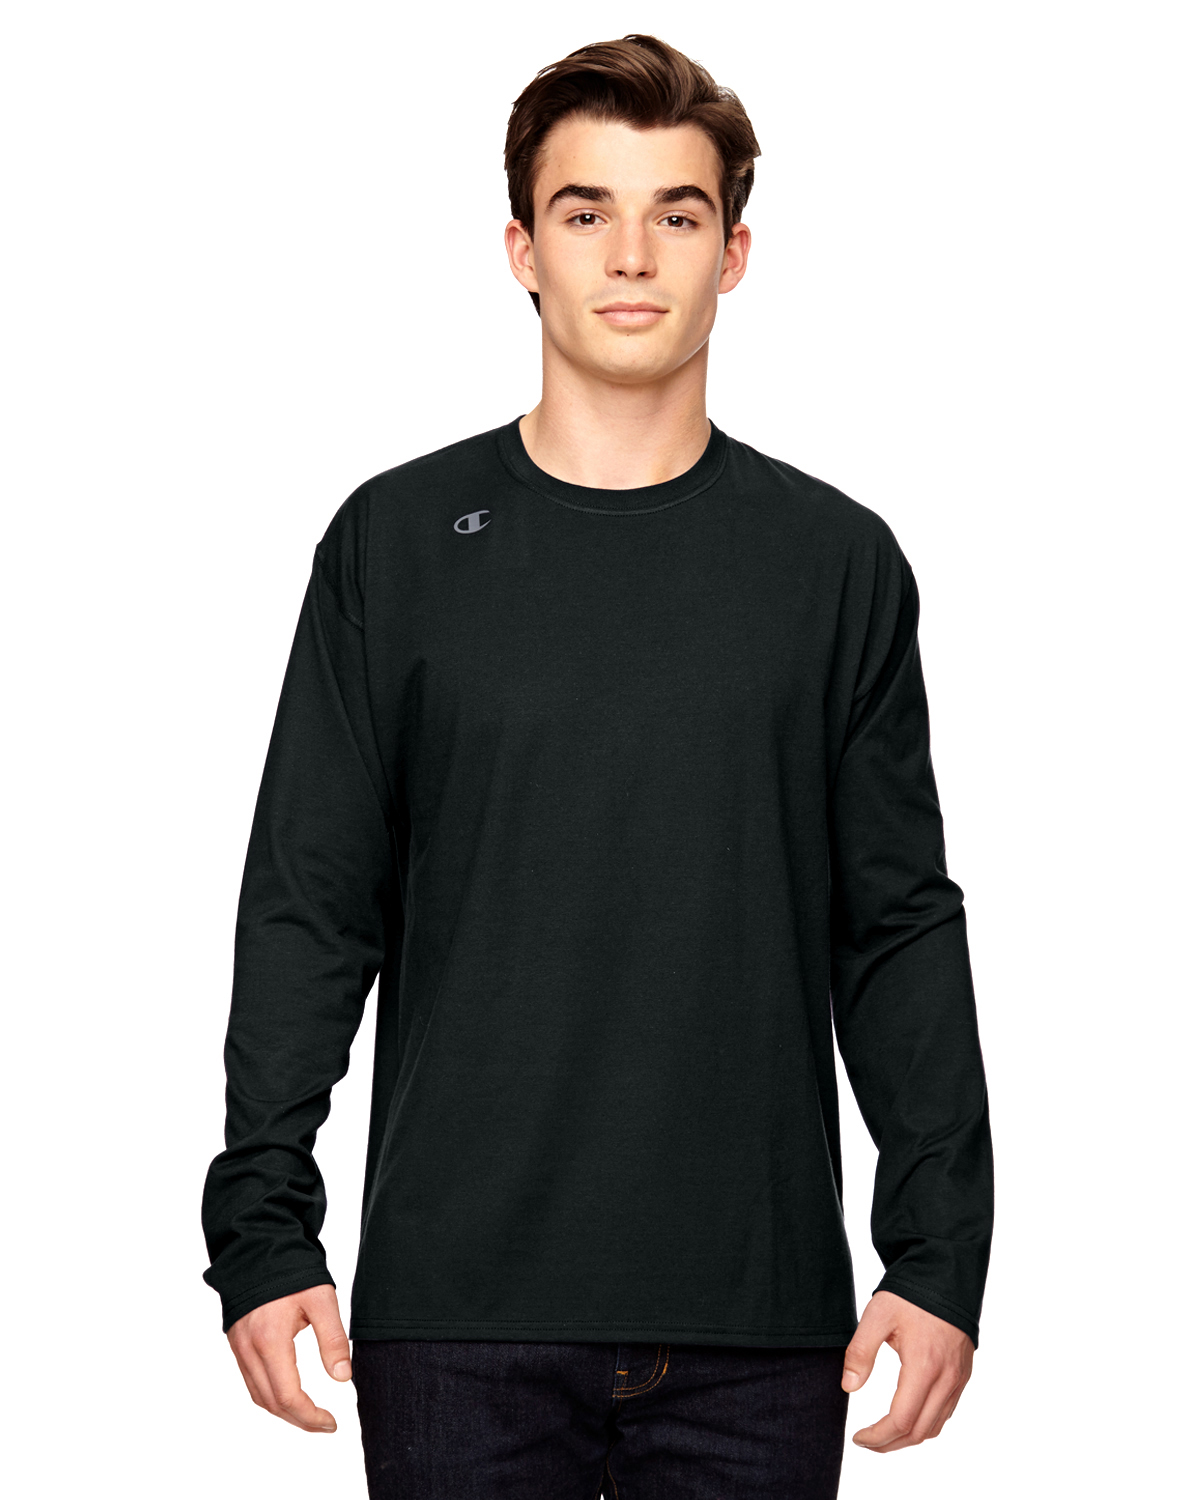 Champion T390 - Vapor Cotton Long-Sleeve T-Shirt